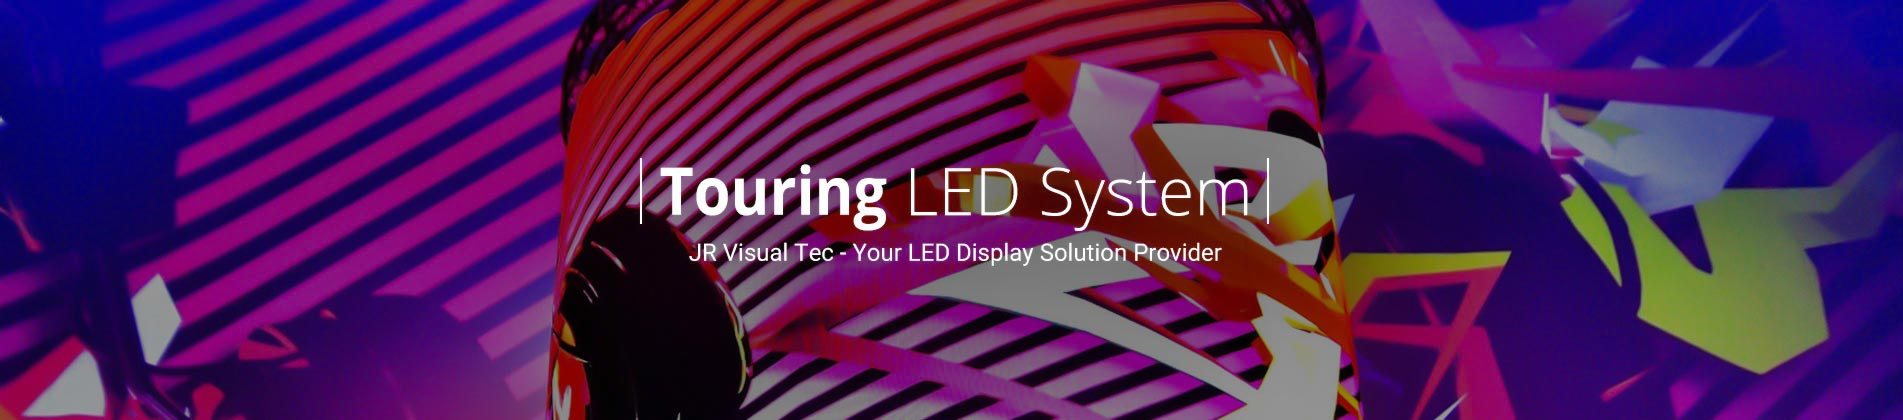 touring led system